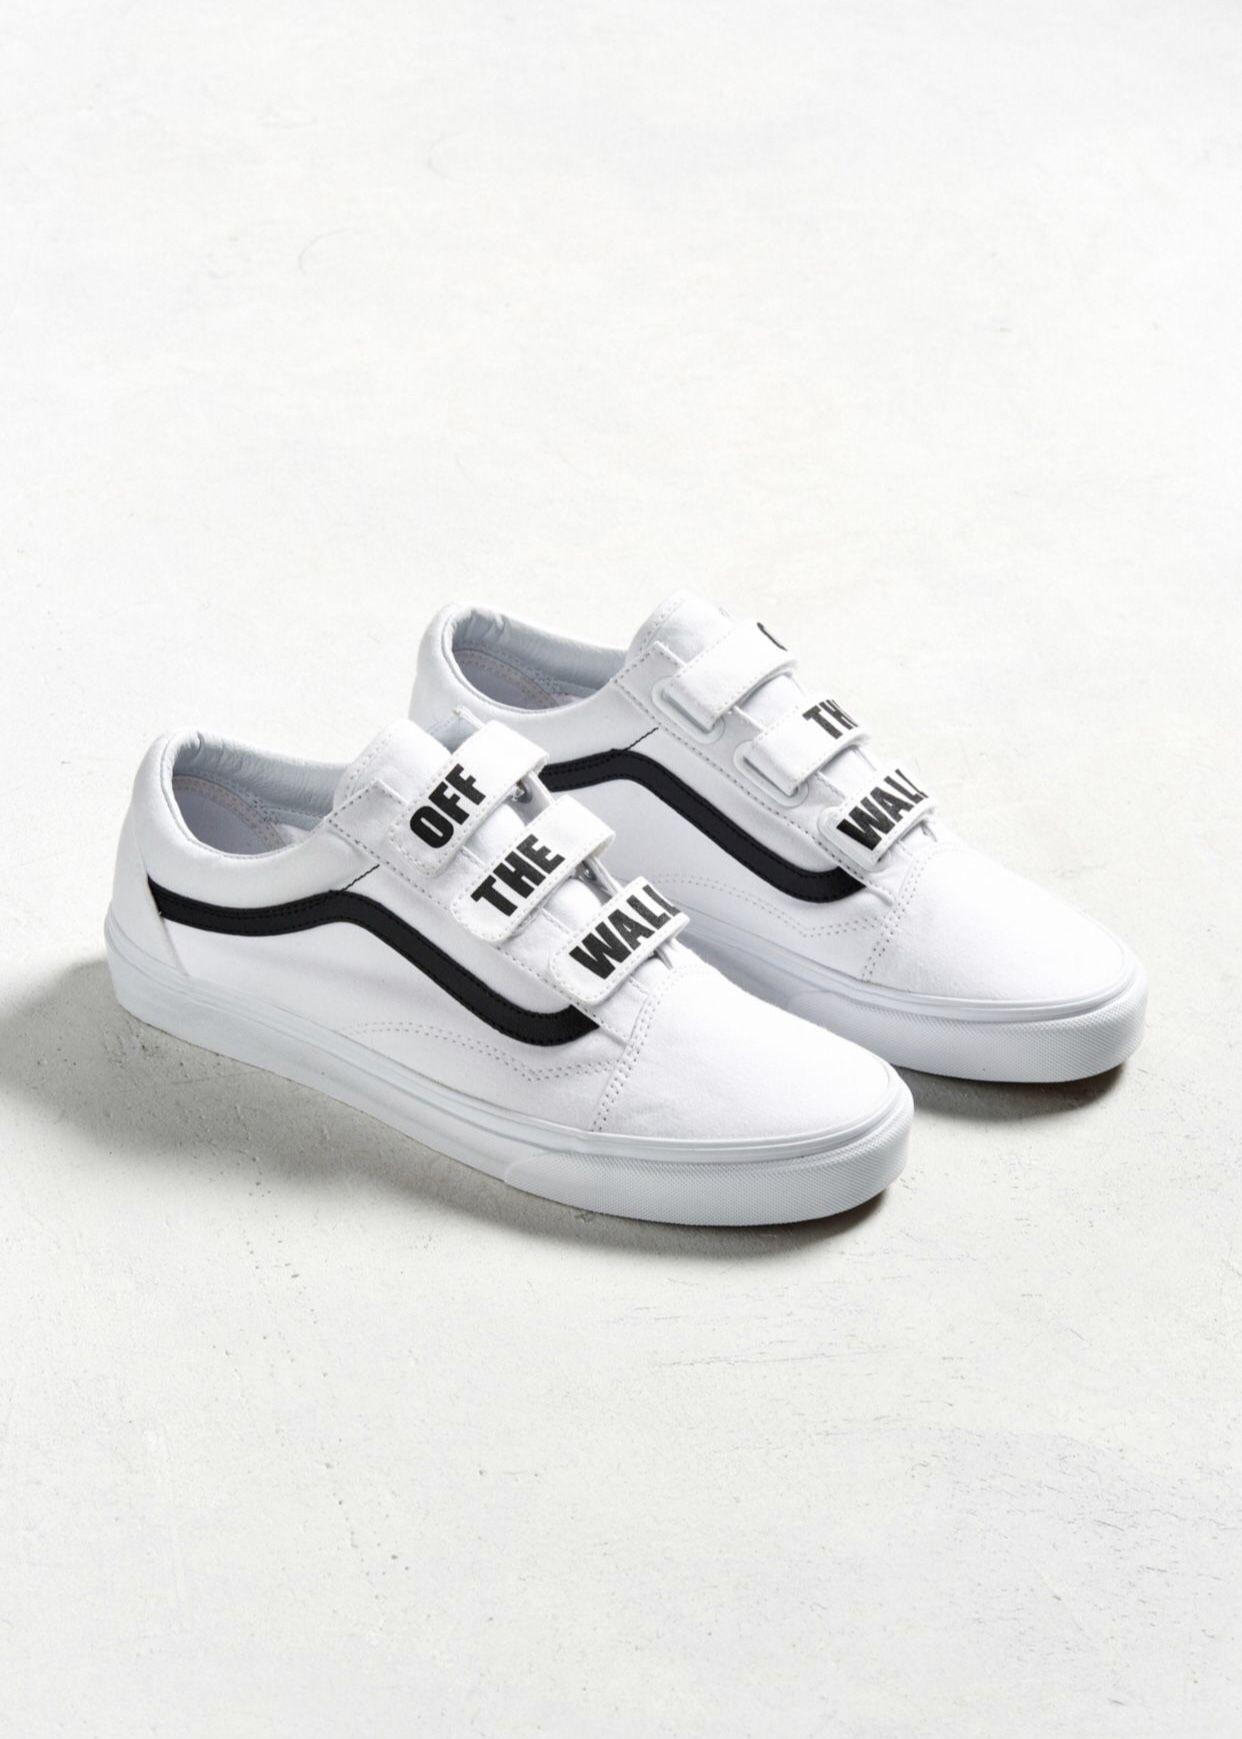 OFF THE WALL STRAP UP VANS  672939ef51